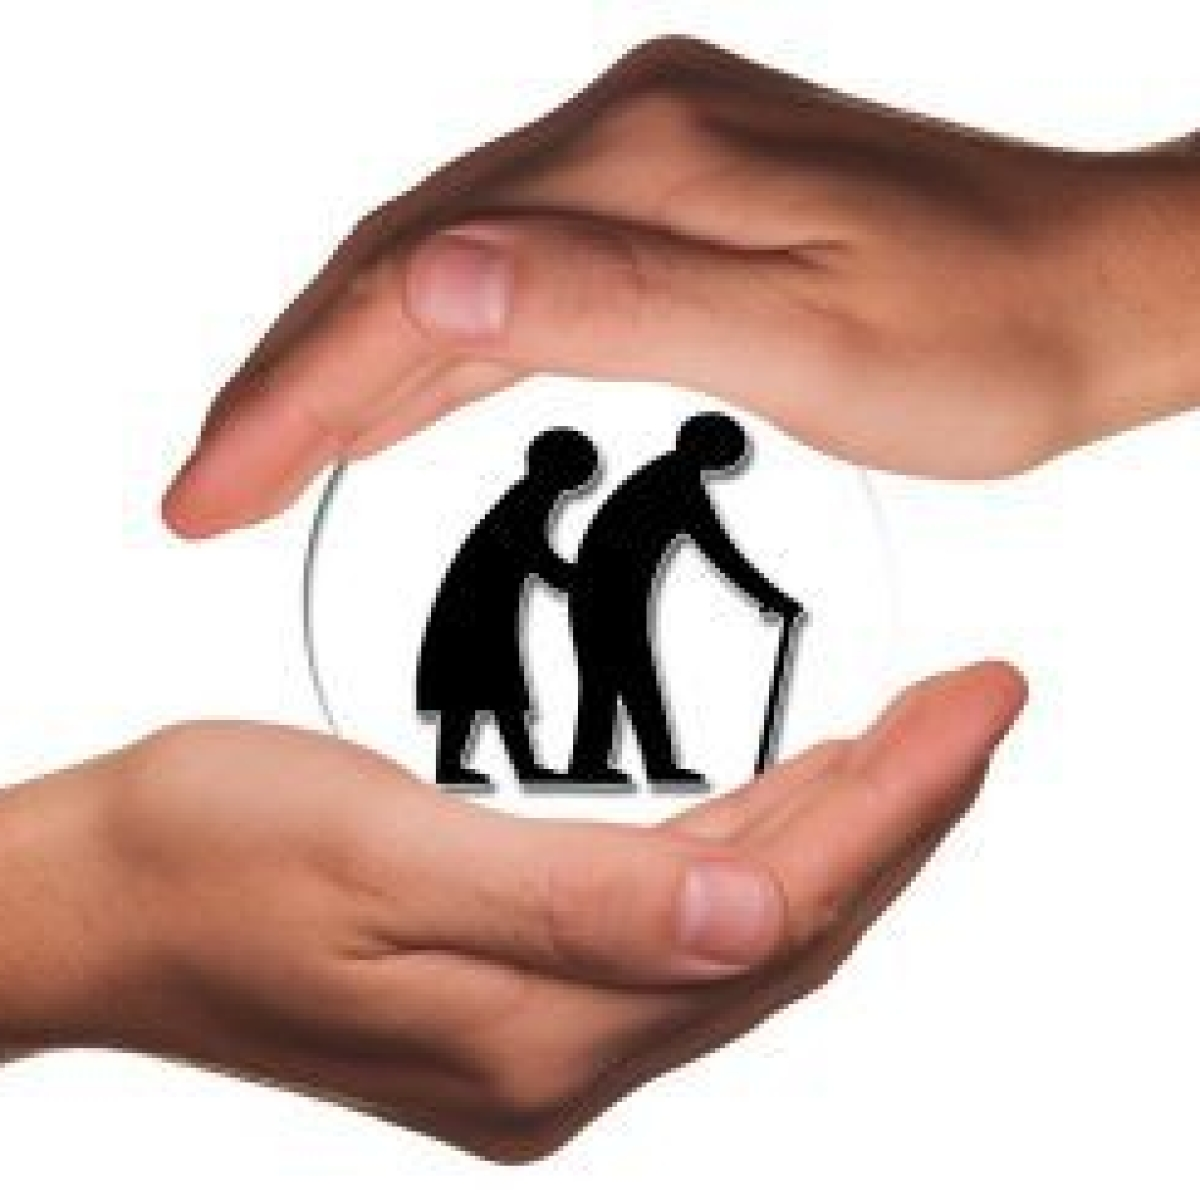 Senior citizens are an important part of our lives, use their experience, says Bombay HC